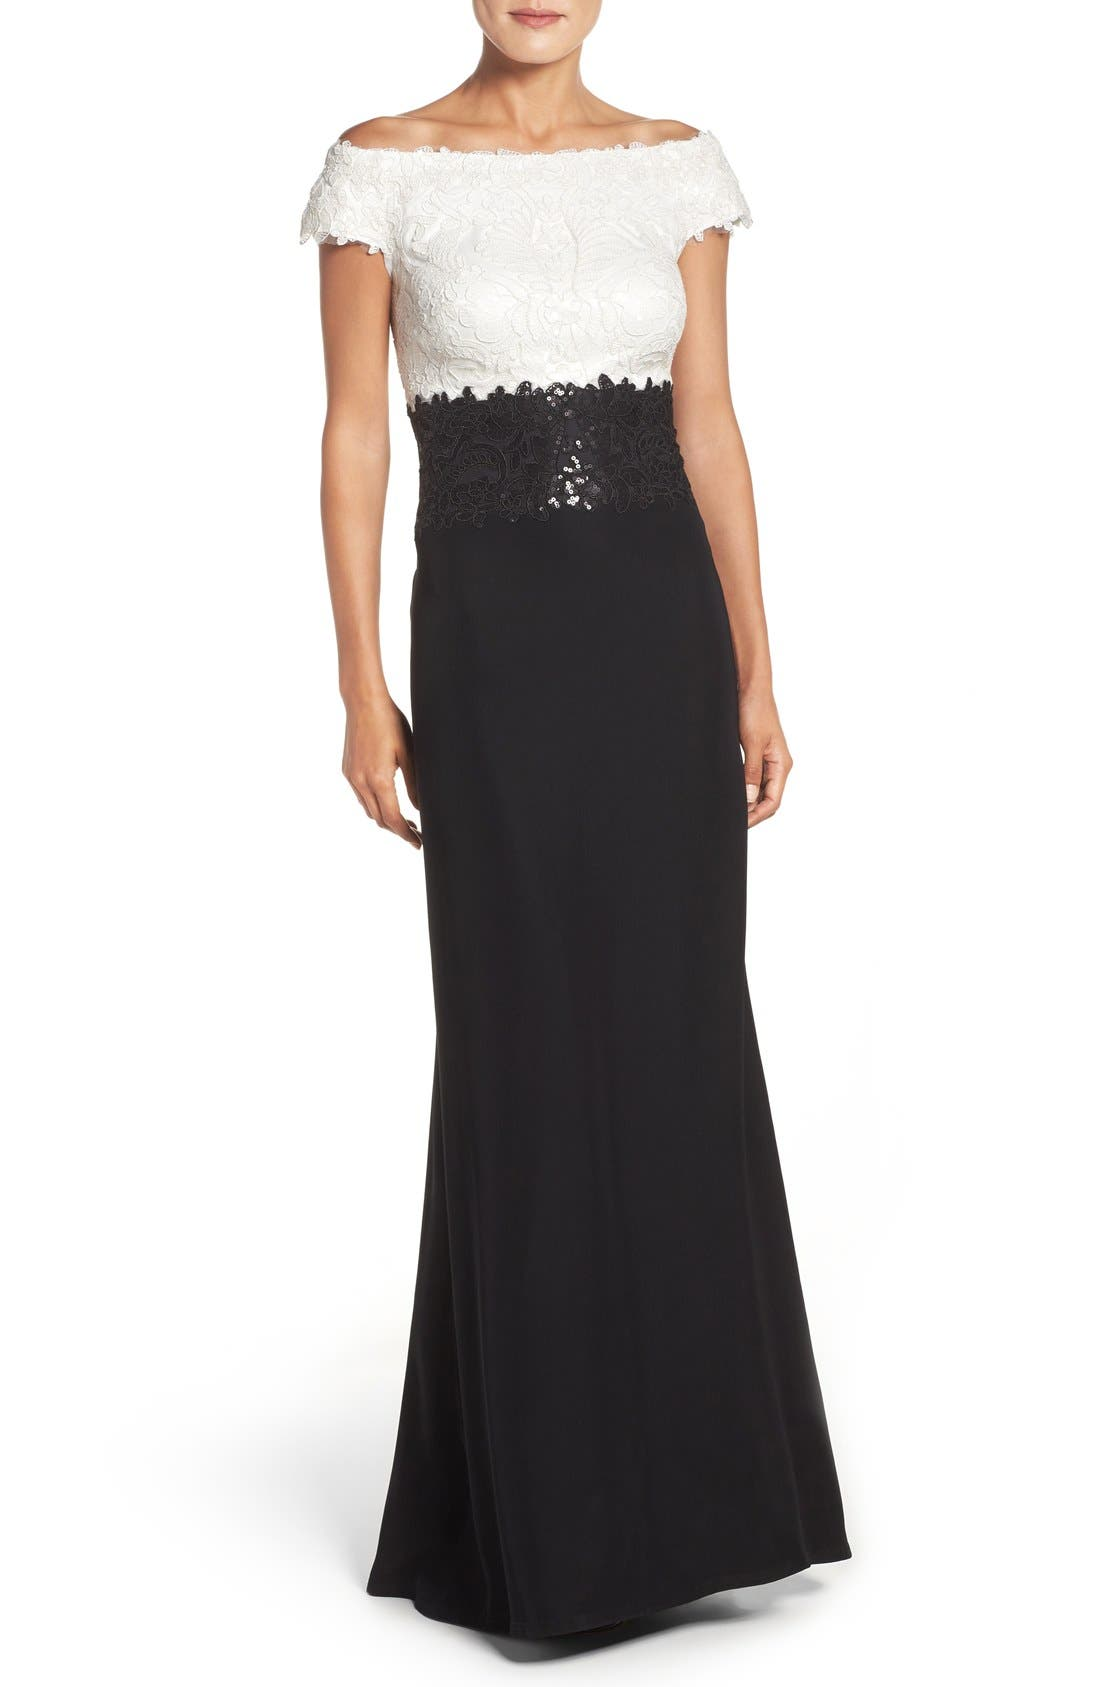 Alternate Image 1 Selected - Tadashi Shoji Off the Shoulder Lace Gown (Regular & Petite)